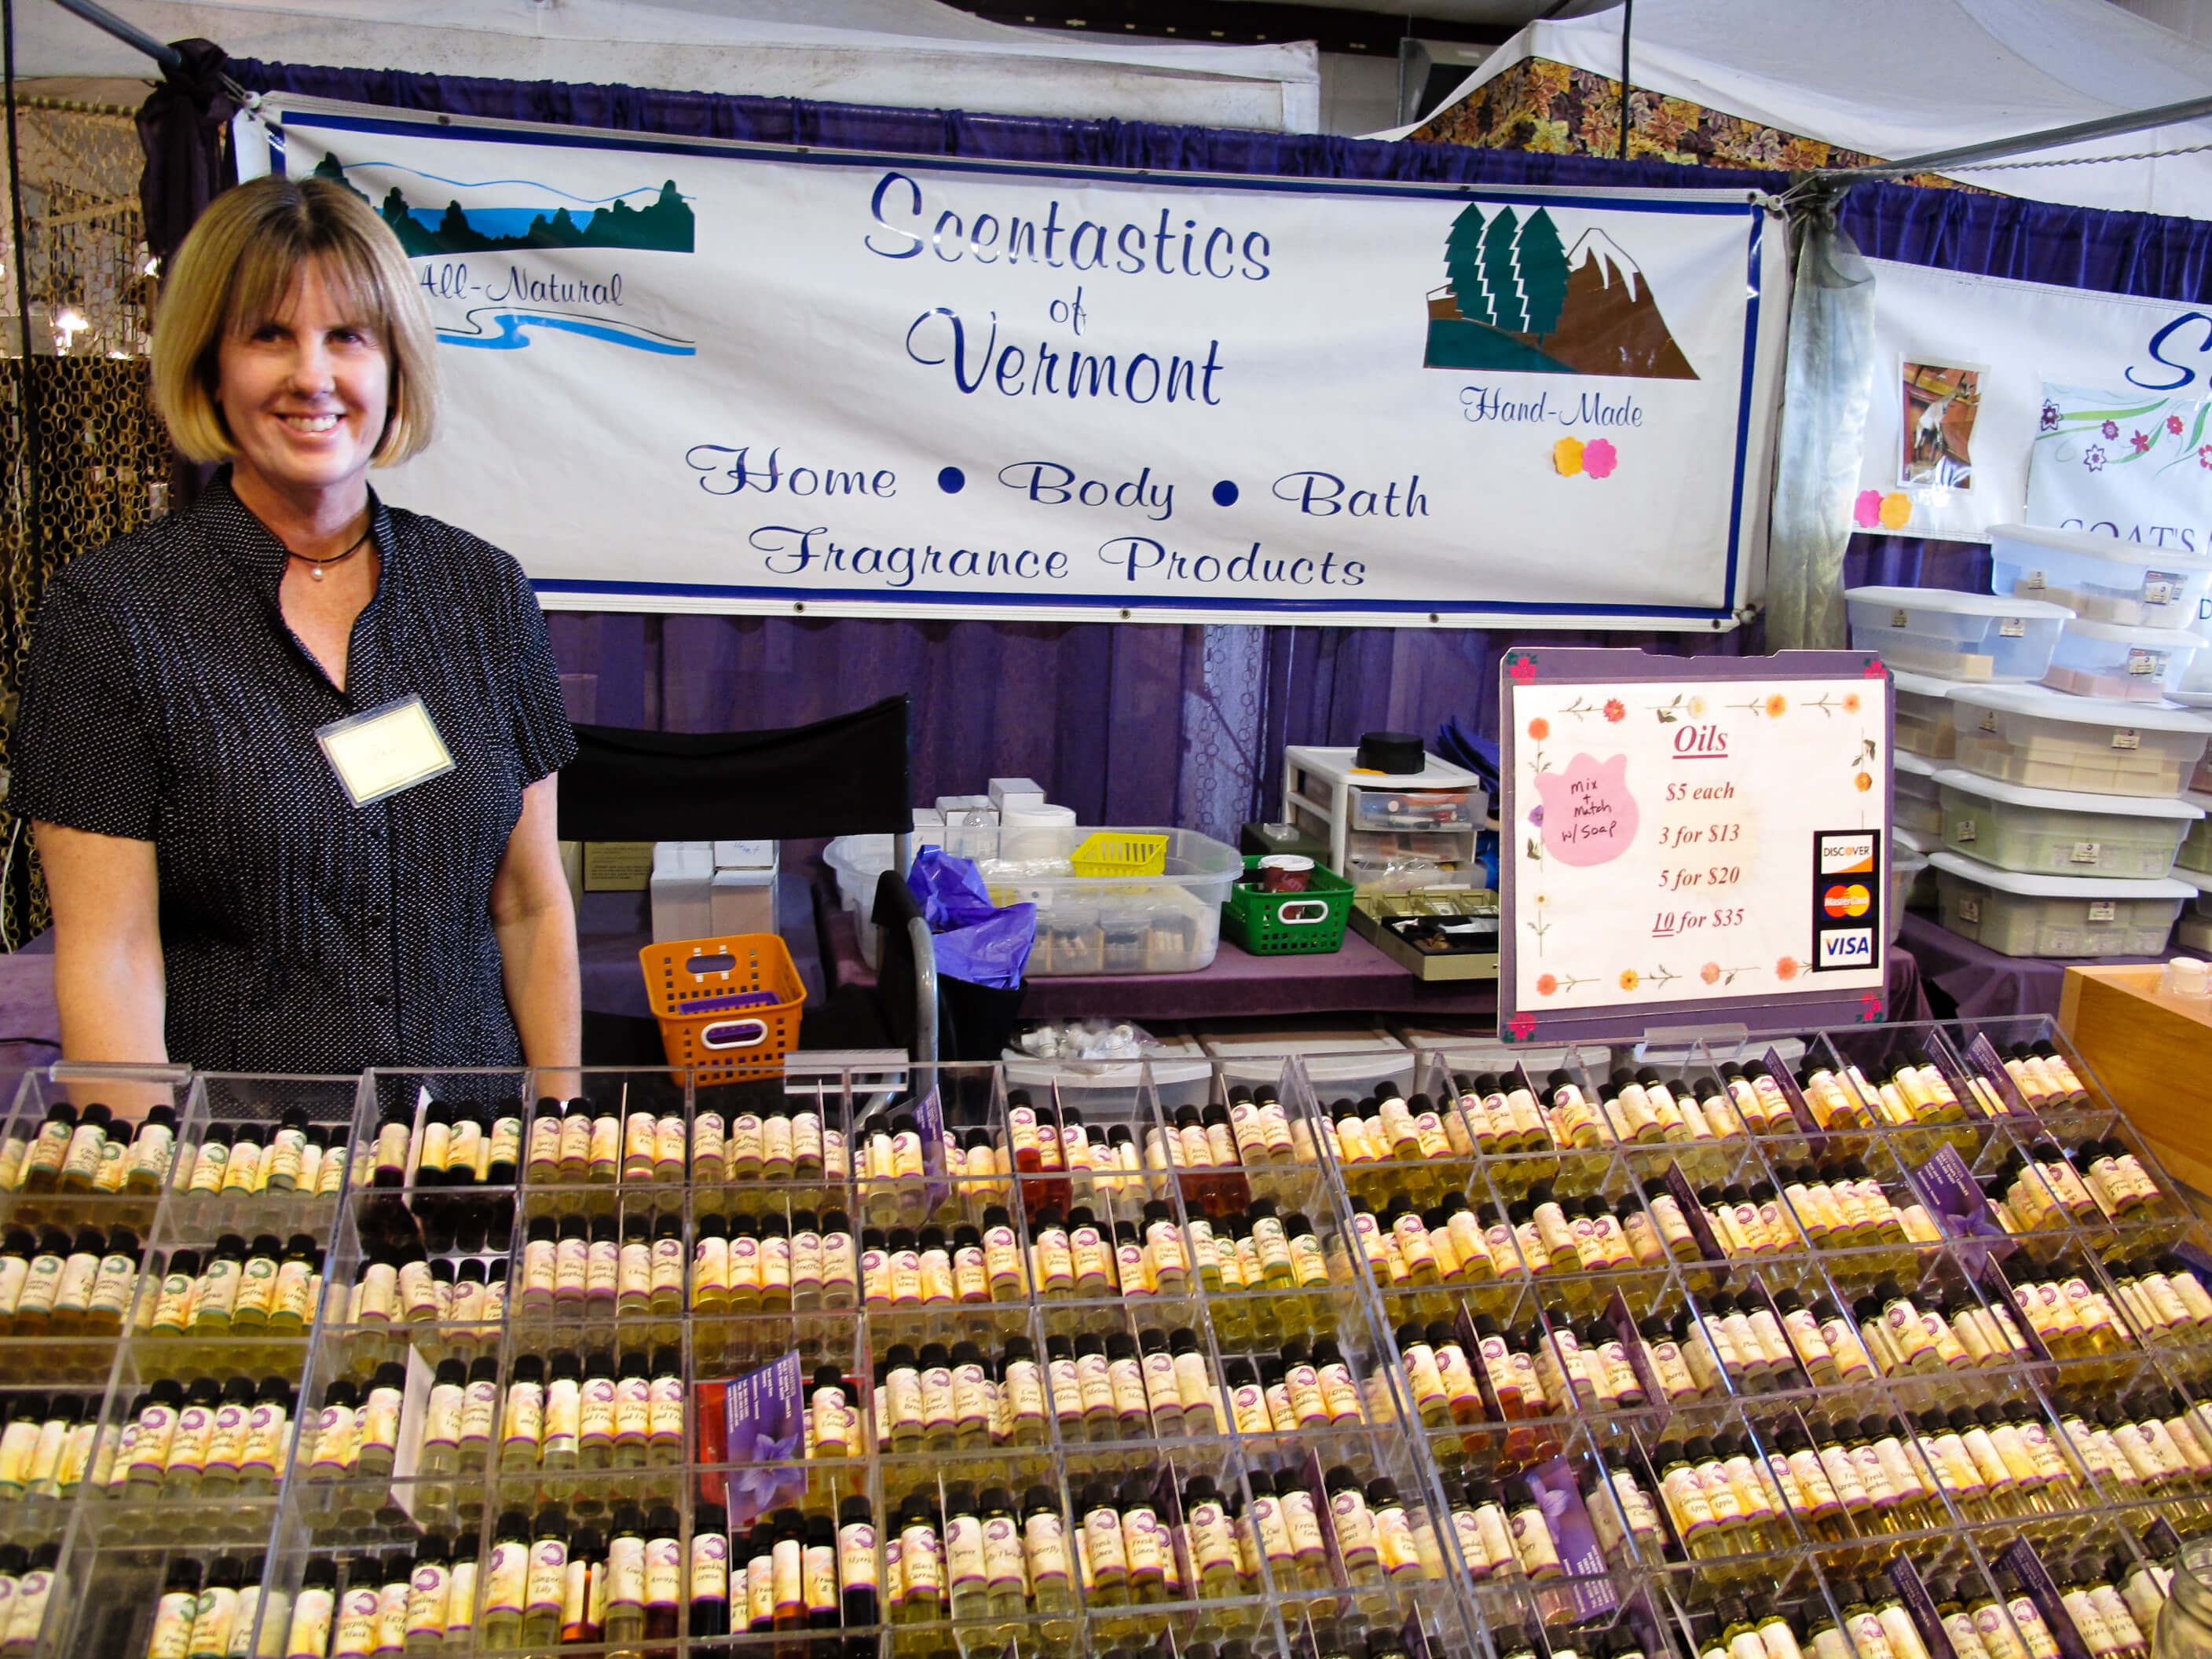 Scentastics of Vermont, Handmade essential oils, Woodstock-New Platz Art & Crafts Fair